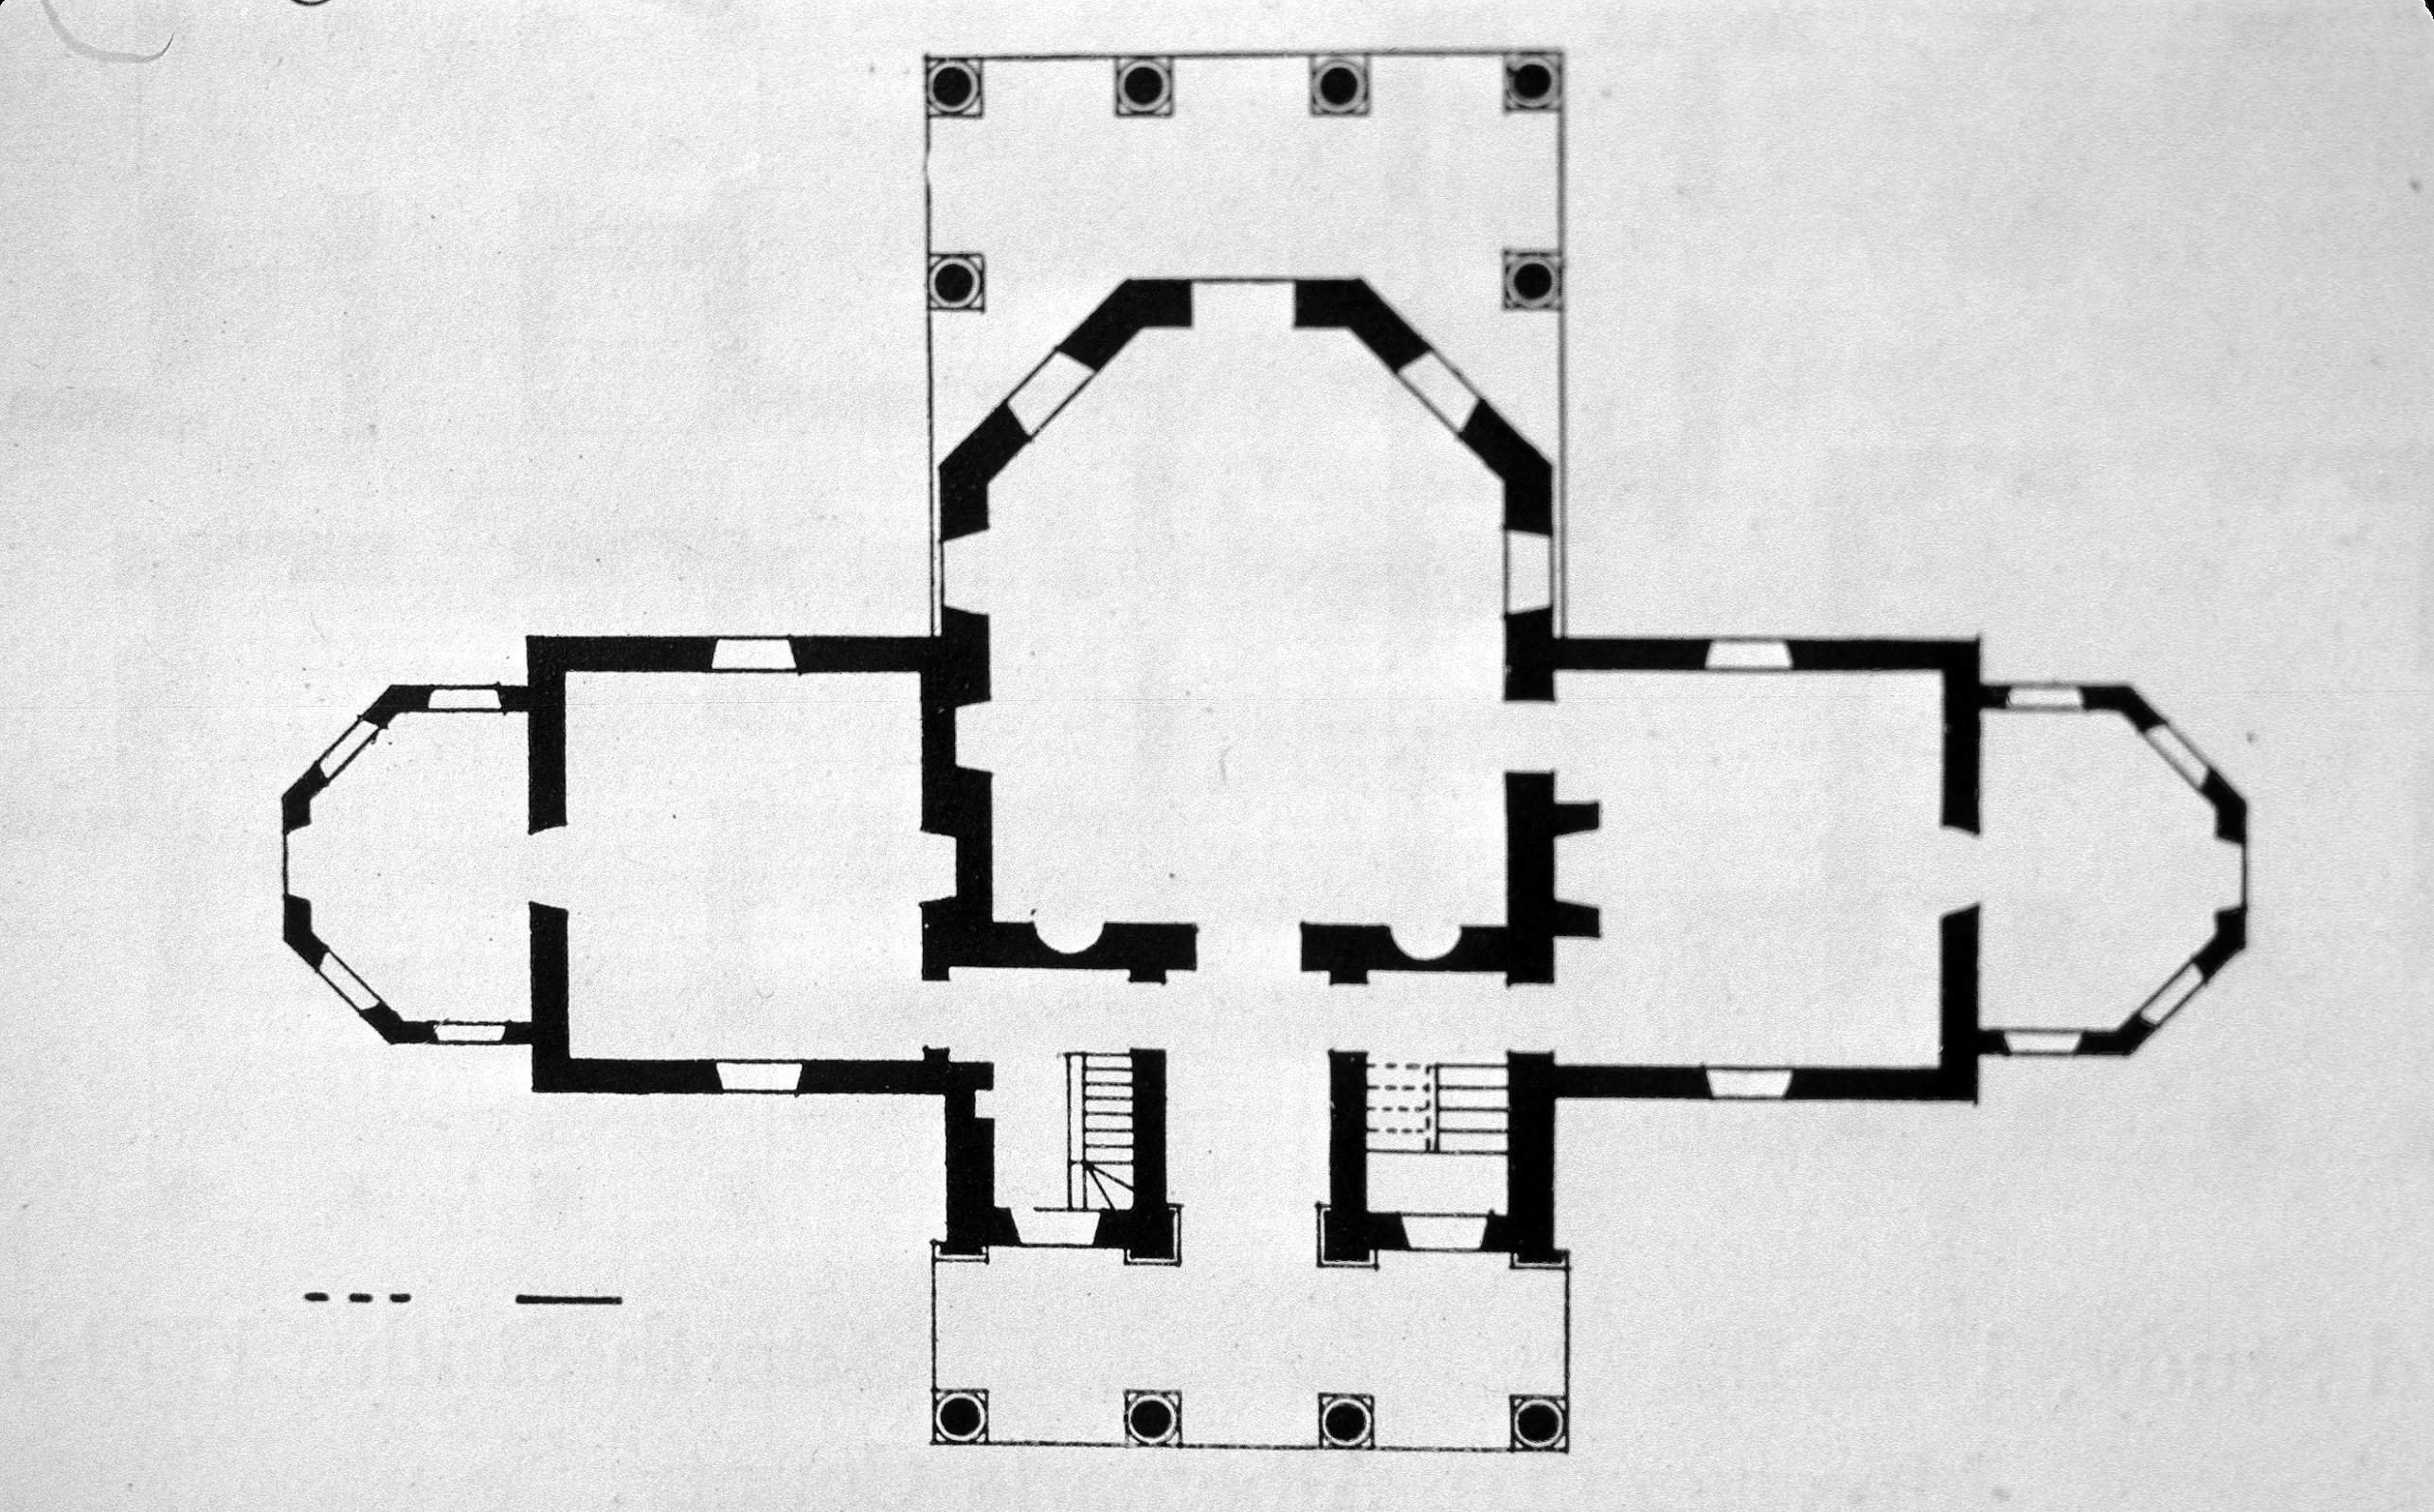 Monticello first floor plan note on slide floor plan for Monticello floor plan